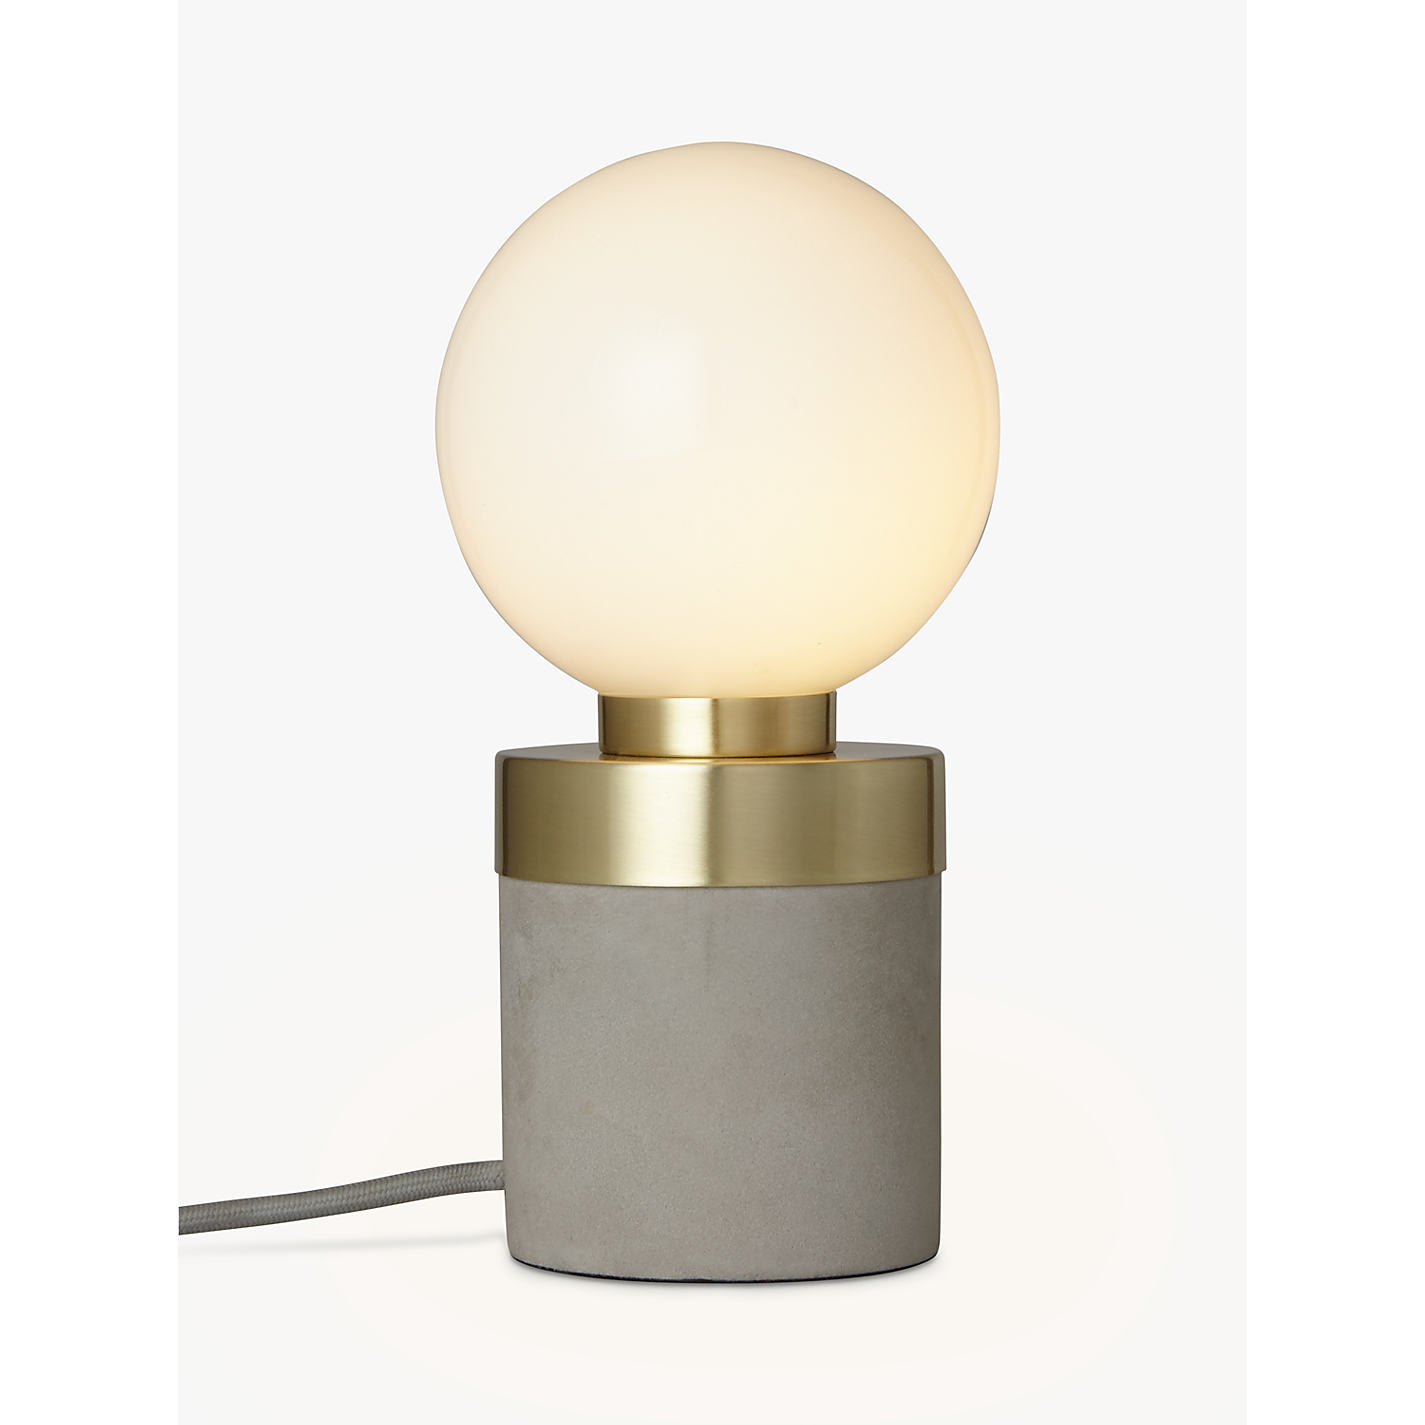 Buy design project by john lewis no046 lamp opal glassconcrete buy design project by john lewis no046 lamp opal glassconcrete online geotapseo Image collections